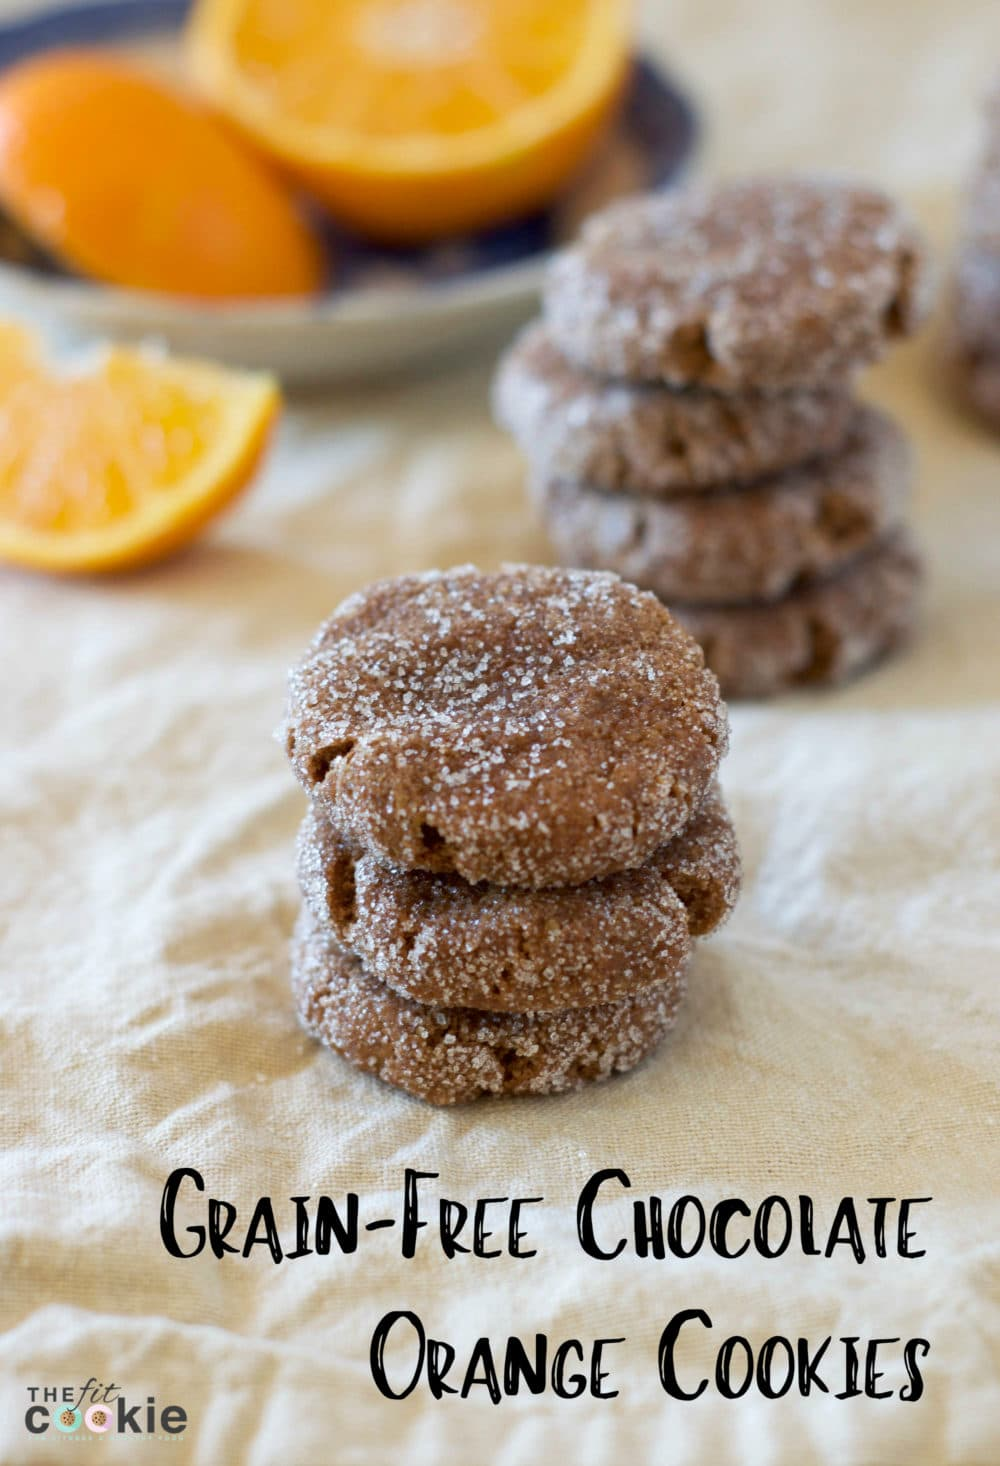 Grain-Free Chocolate Orange Cookies (#GrainFree & #Vegan) - @TheFitCookie #thereciperedux